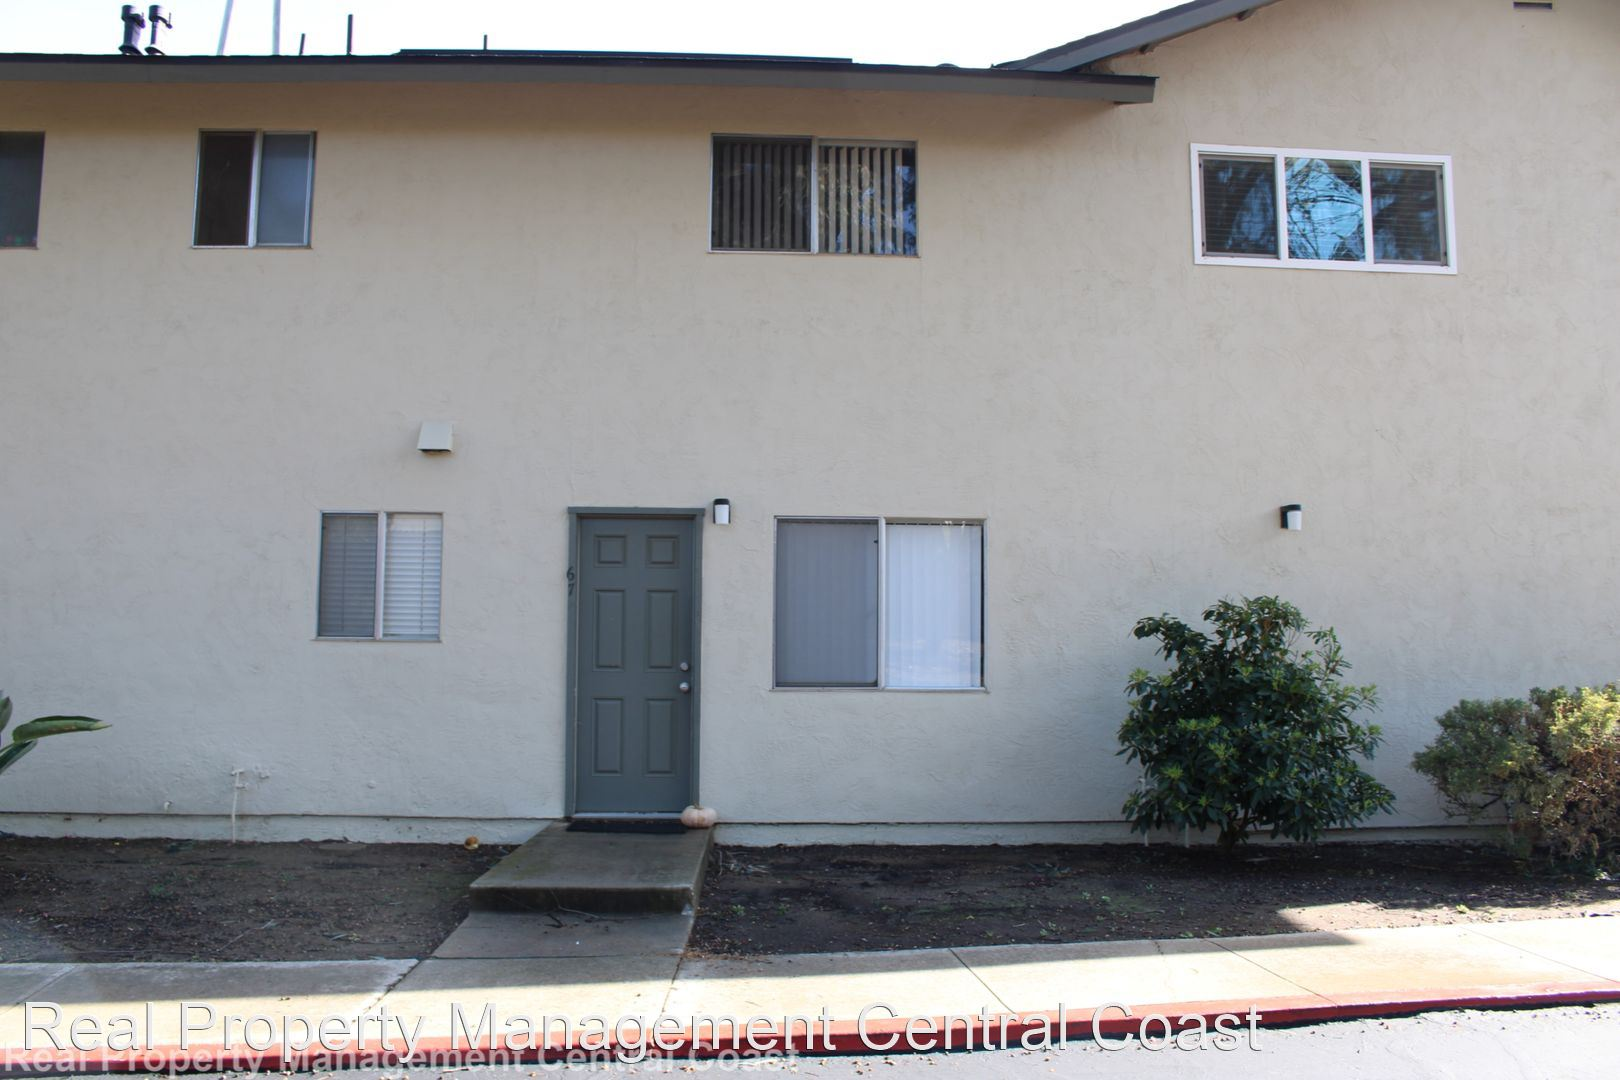 1750 Prefumo Canyon Road, Apt. 67